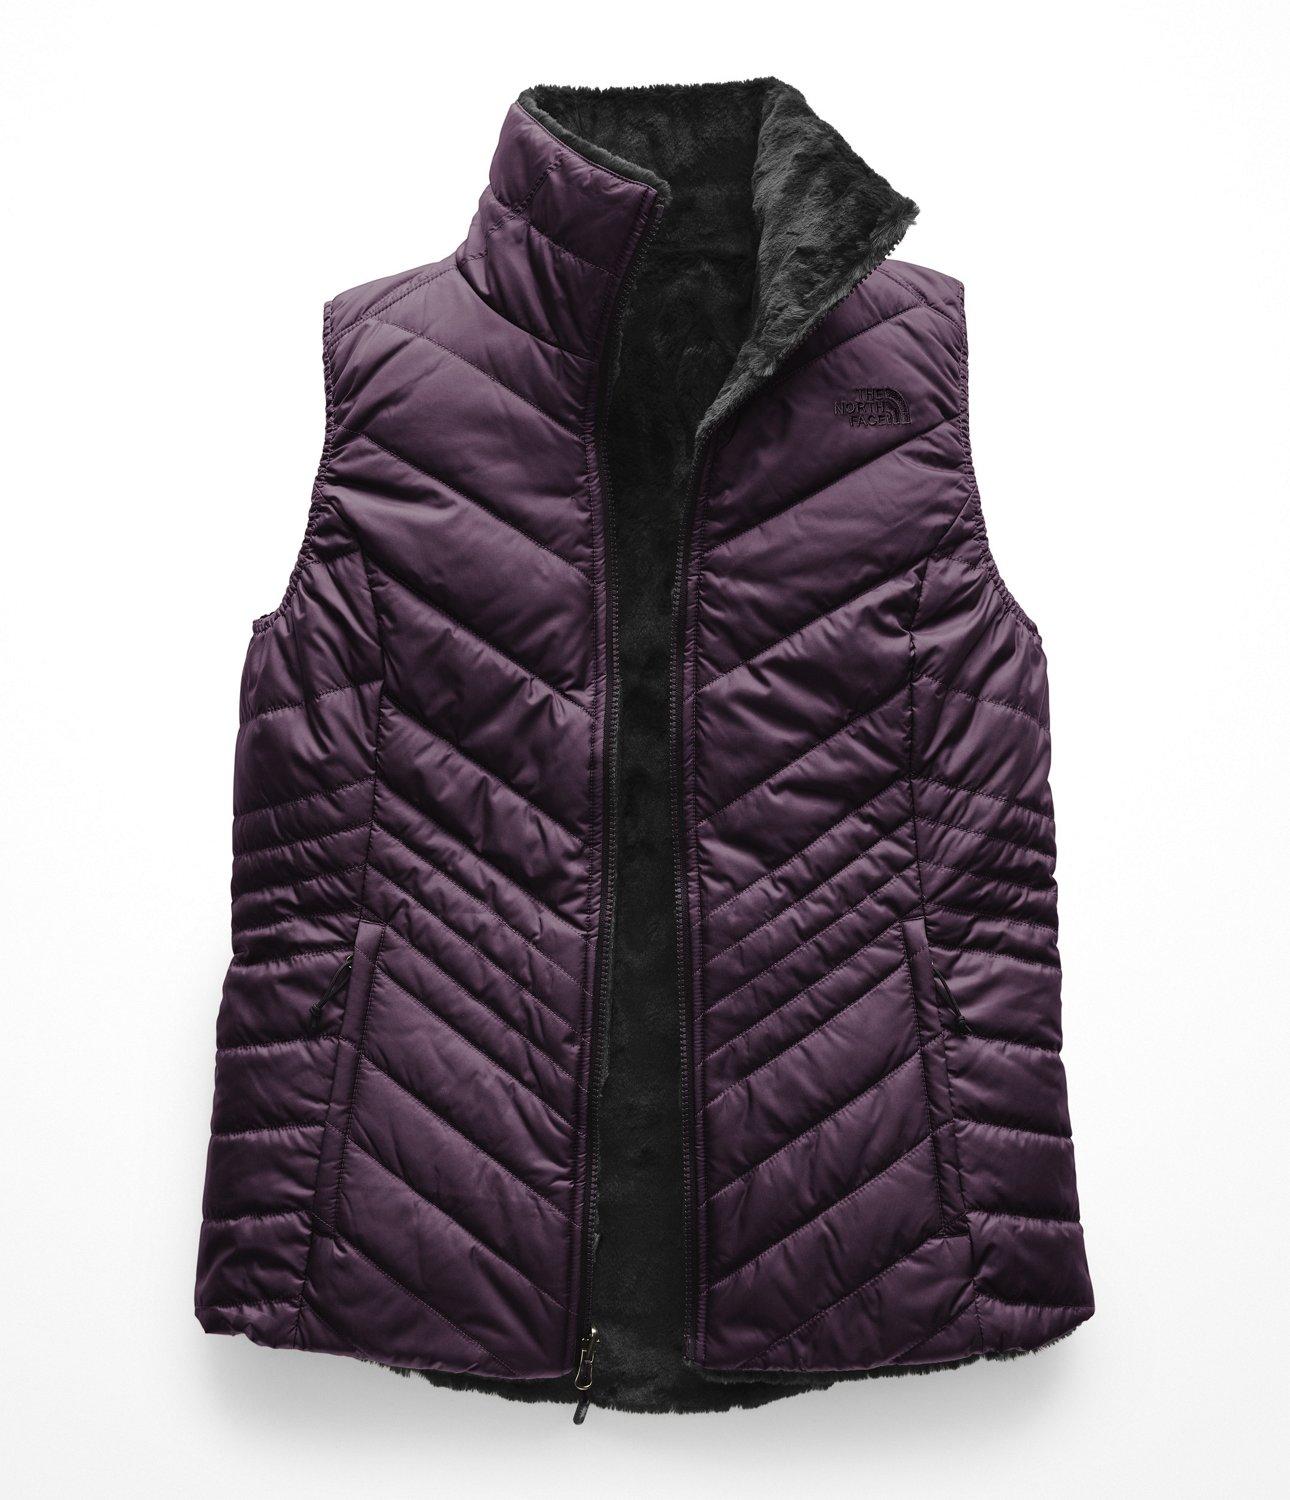 890c57bb049f1c Display product reviews for The North Face Women s Mountain Lifestyle  Mossbud Insulated Reversible Vest